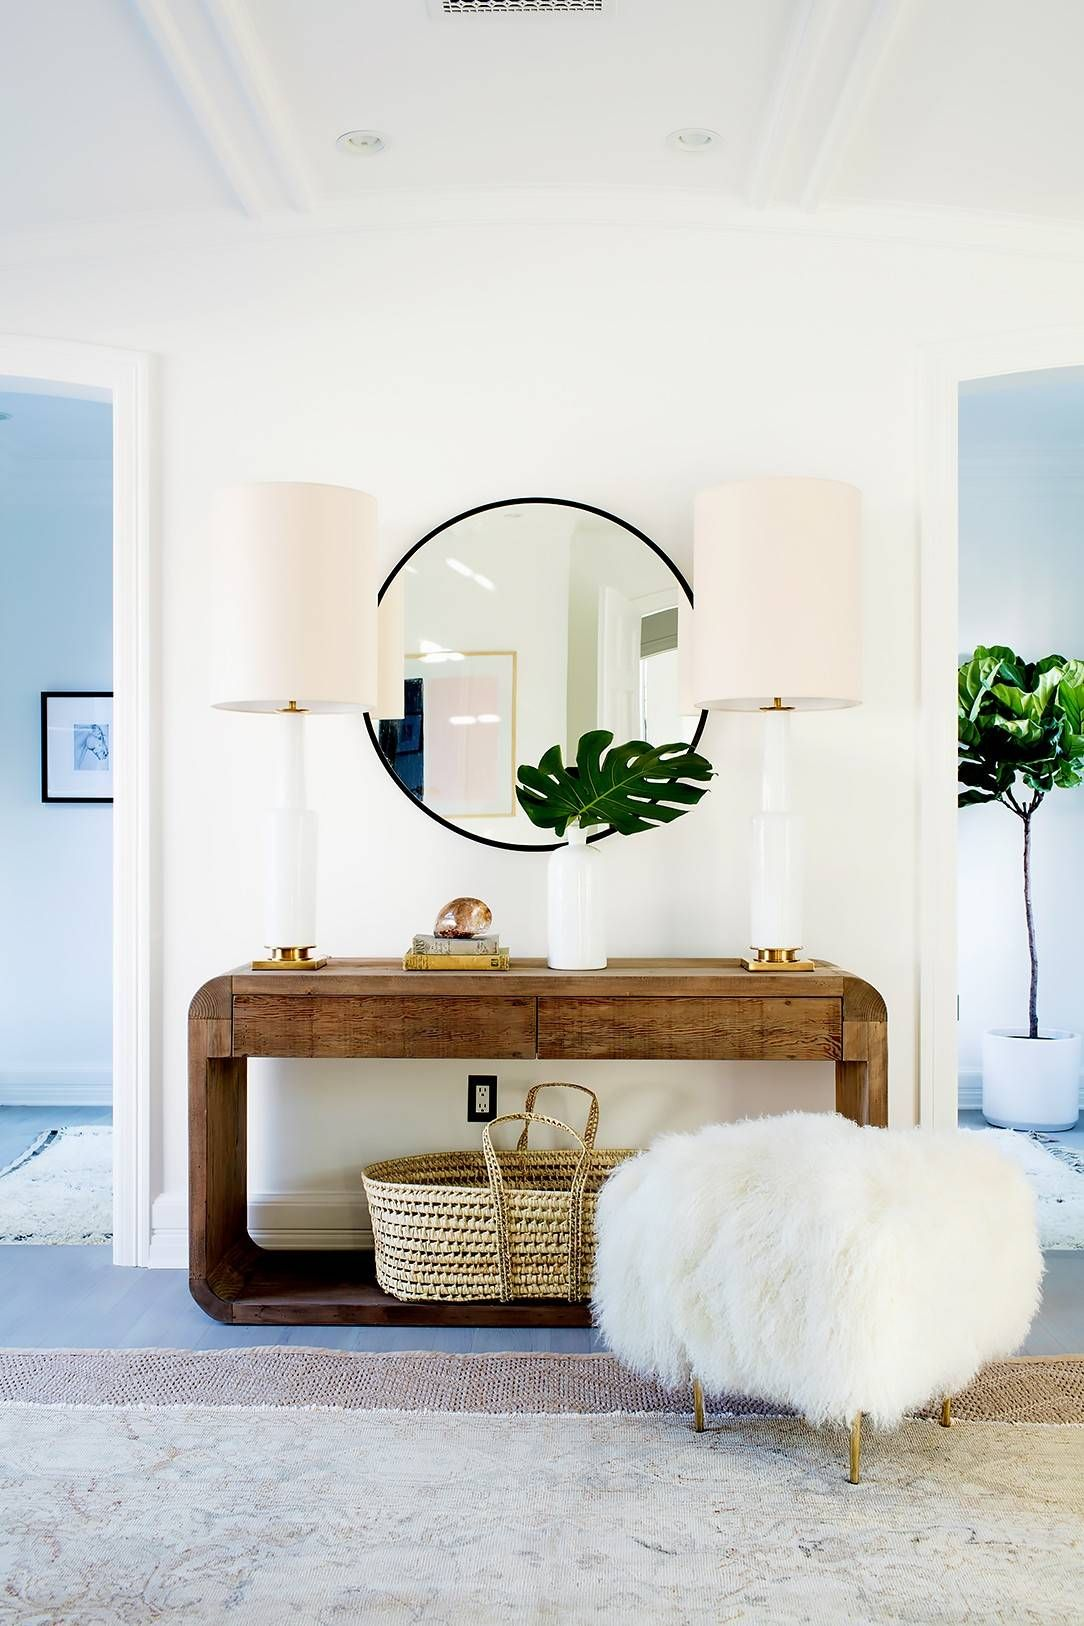 Need A Staycation Turn Your Home Into A Relaxing Retreat In 2019 Home Decor Small Entryways